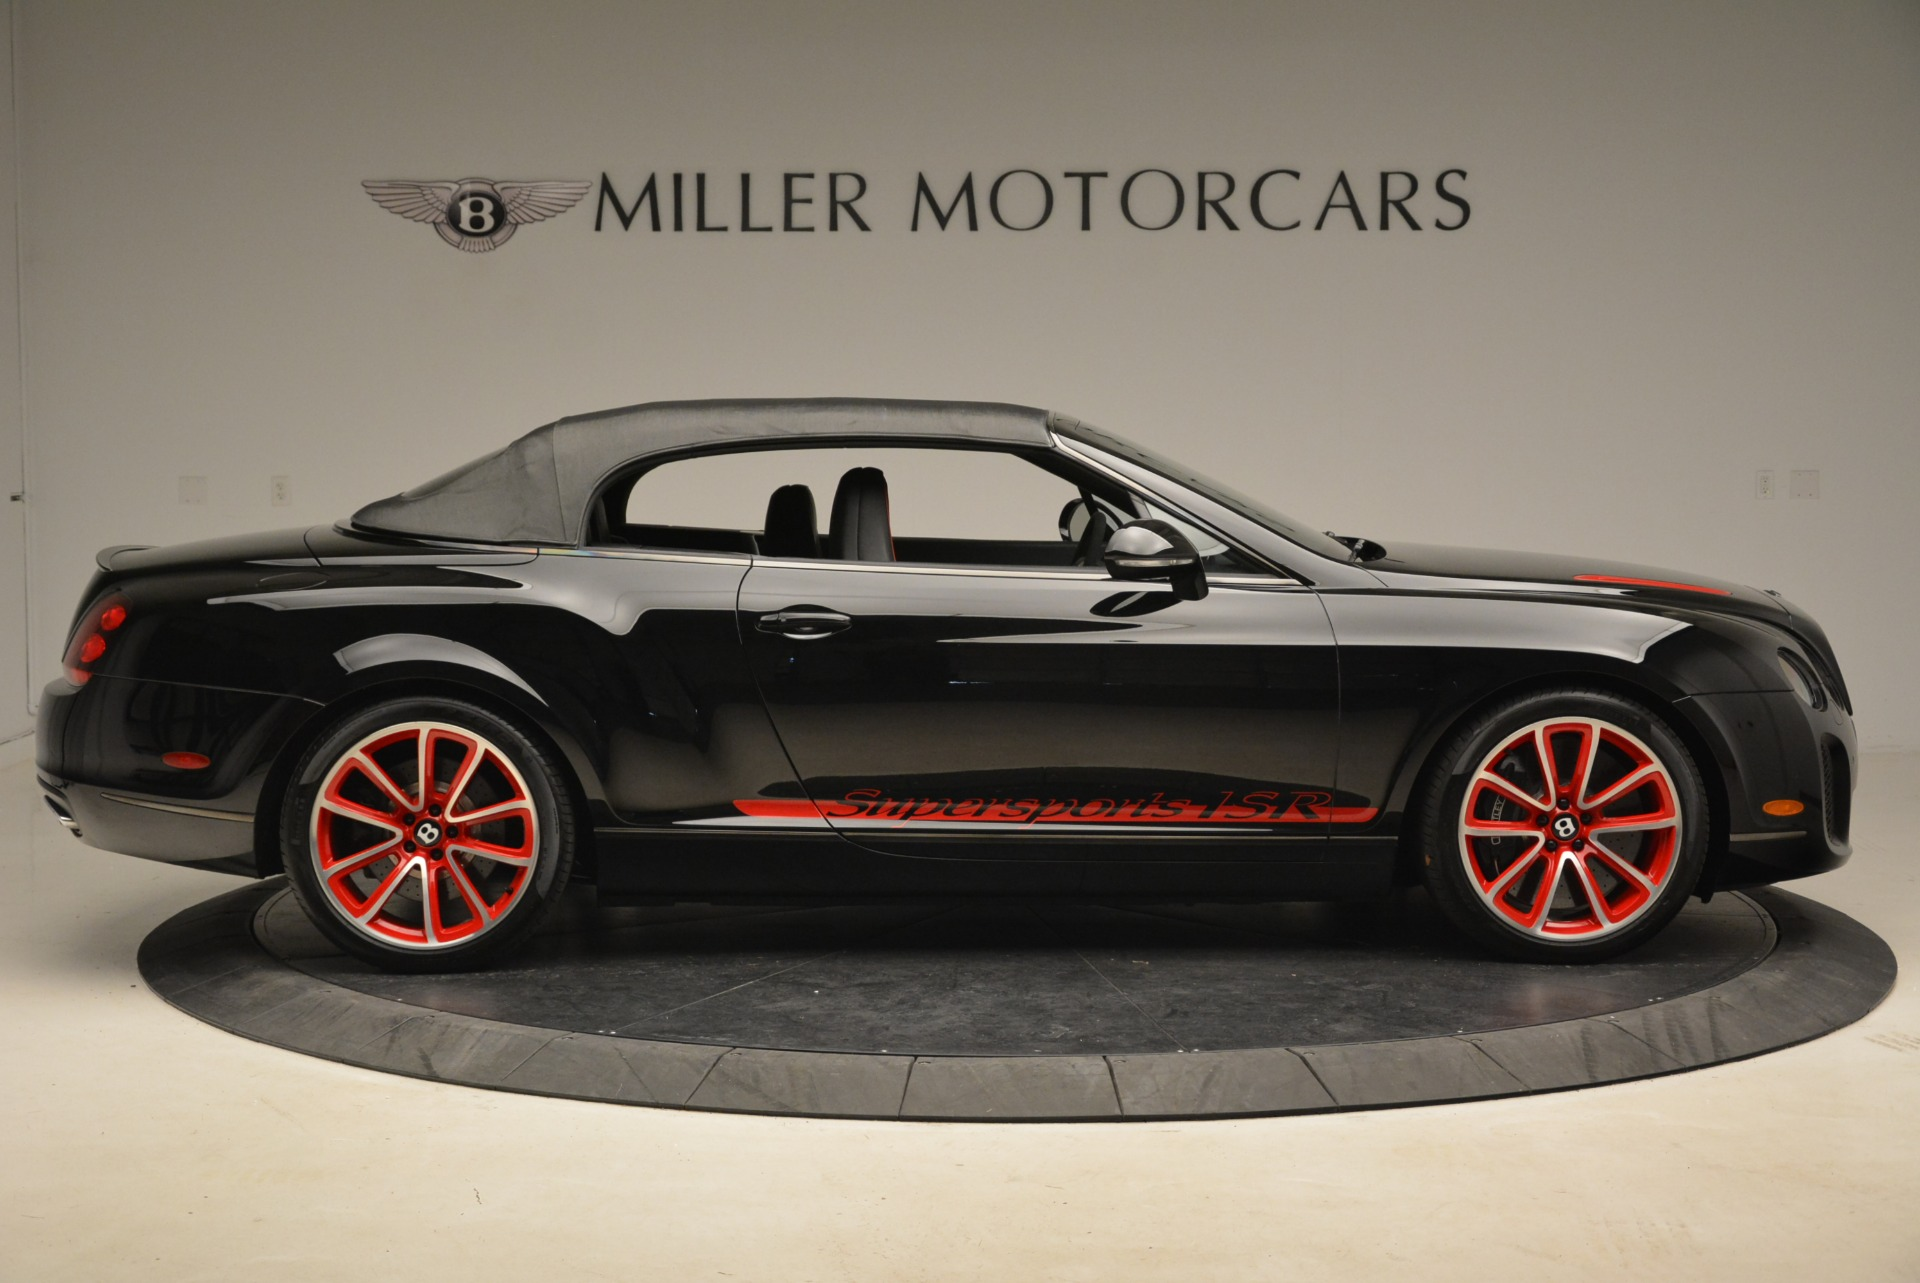 Used 2013 Bentley Continental GT Supersports Convertible ISR For Sale In Greenwich, CT 2151_p22